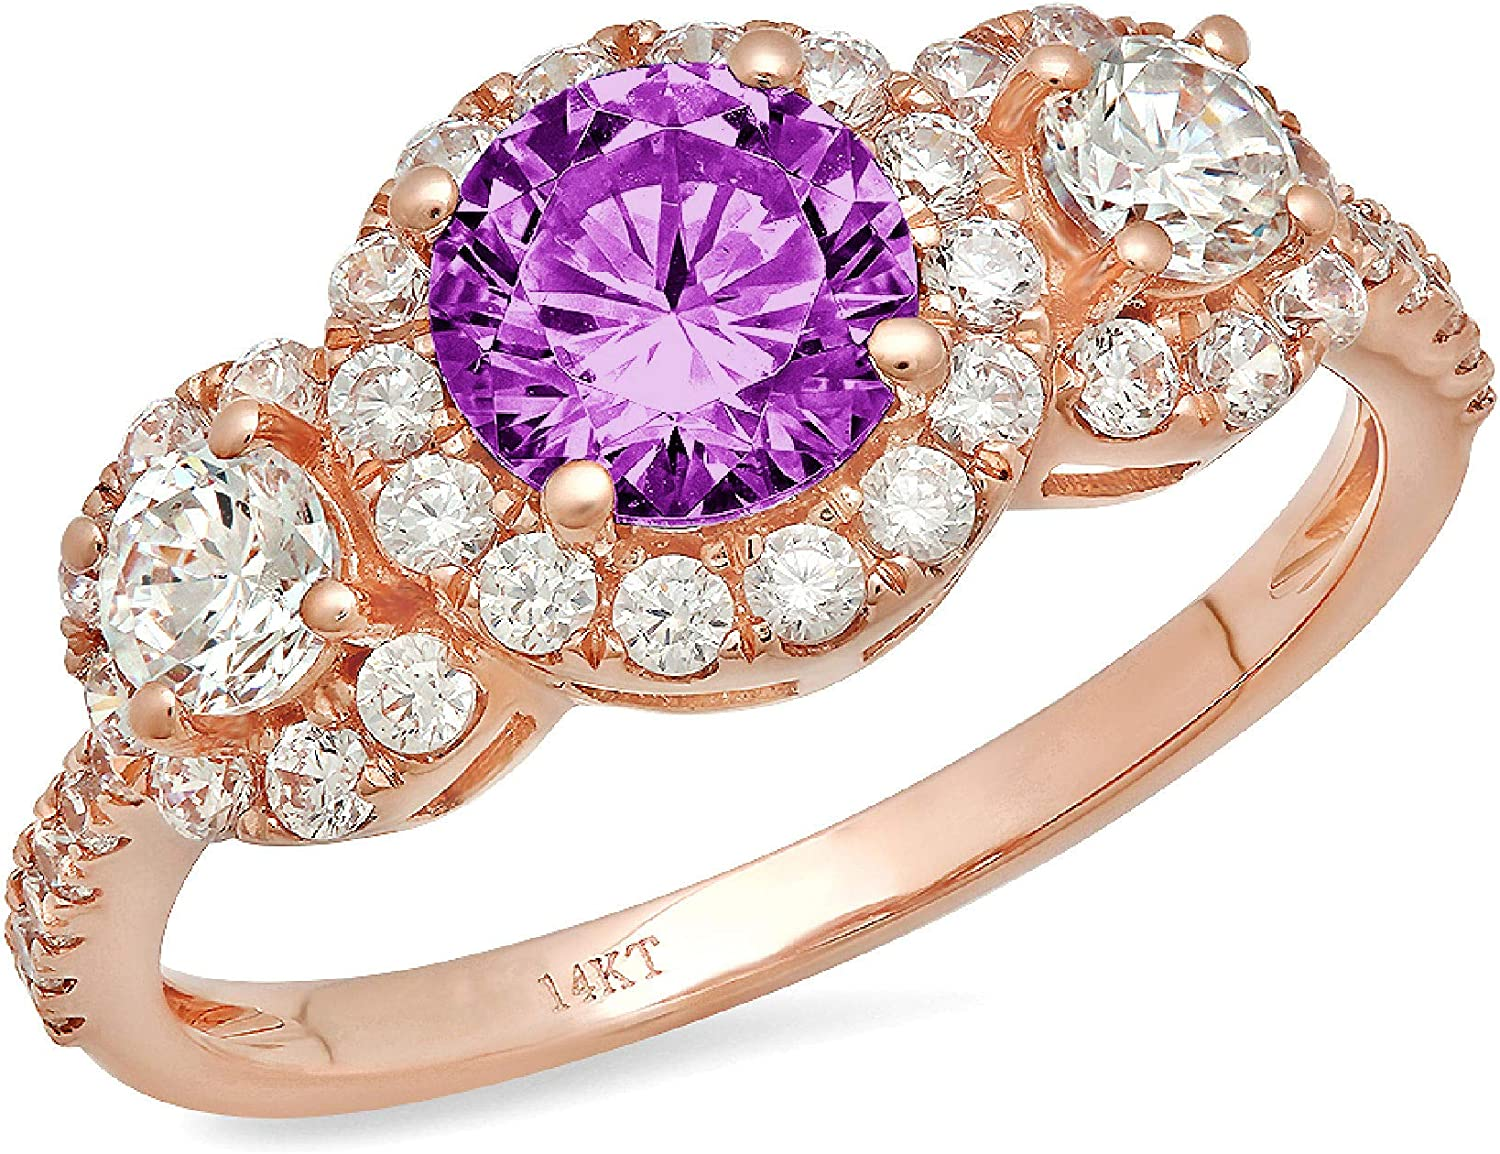 1.8 ct Round Cut Halo Solitaire 3 stone With Accent Stunning Genuine Flawless Simulated Purple Alexandrite Modern Promise Statement Designer Ring 14k Rose Gold